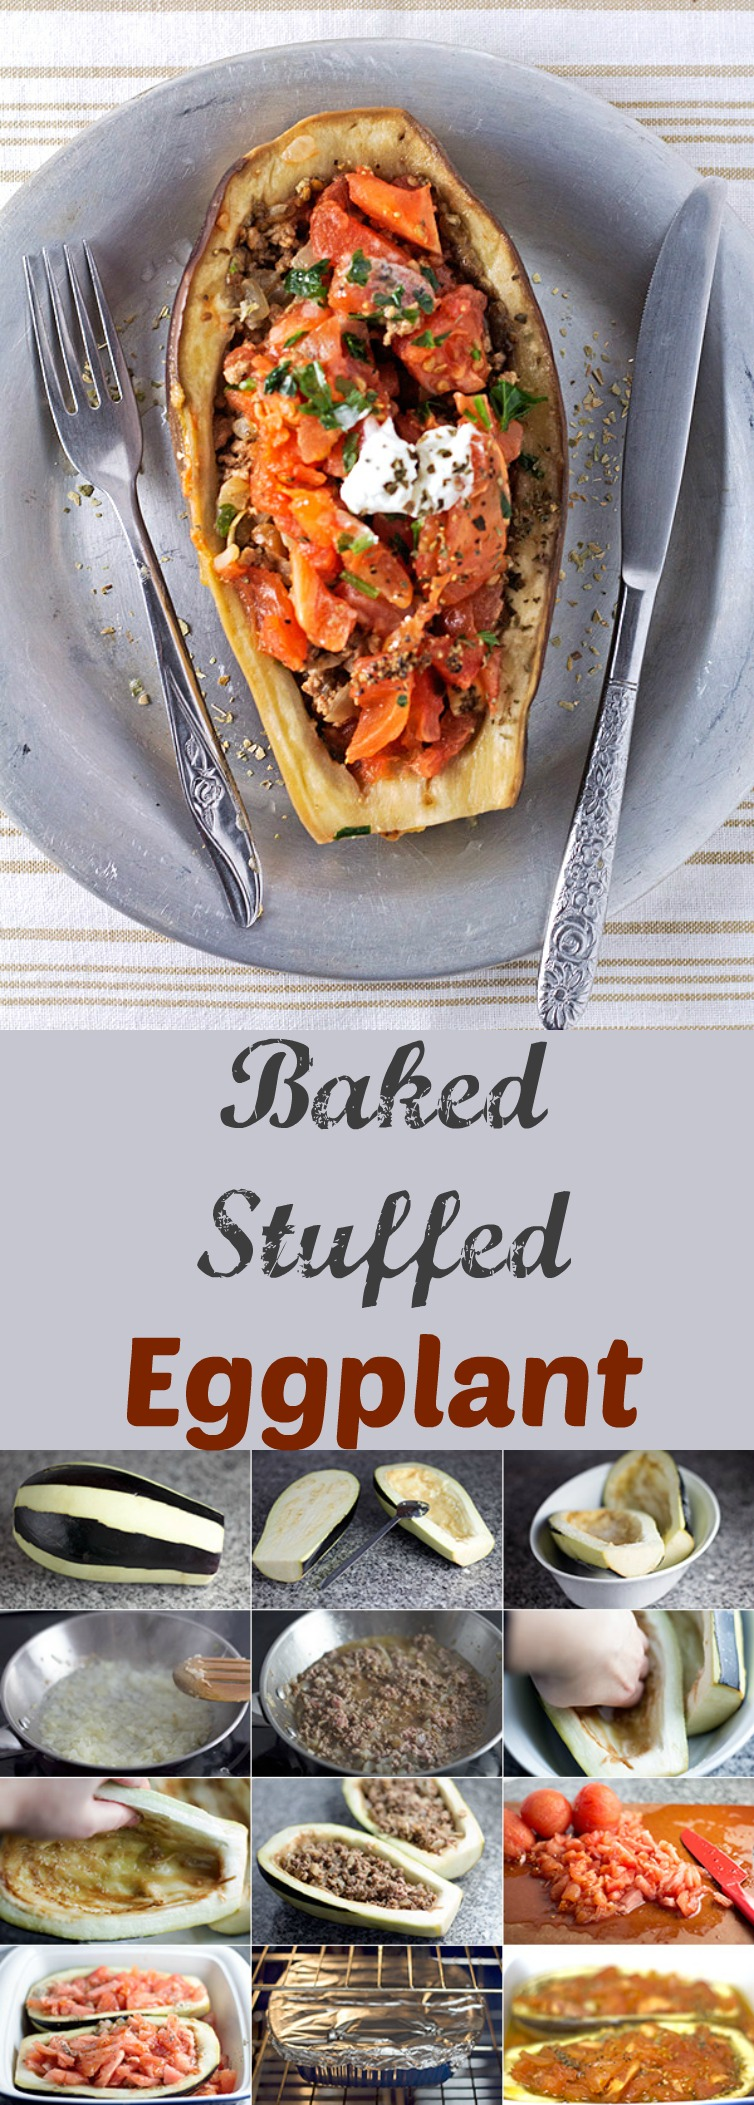 Ground beef, tomatoes, and spices as a filling to the perfect stuffed eggplant. For when you really want that perfect date night dinner.